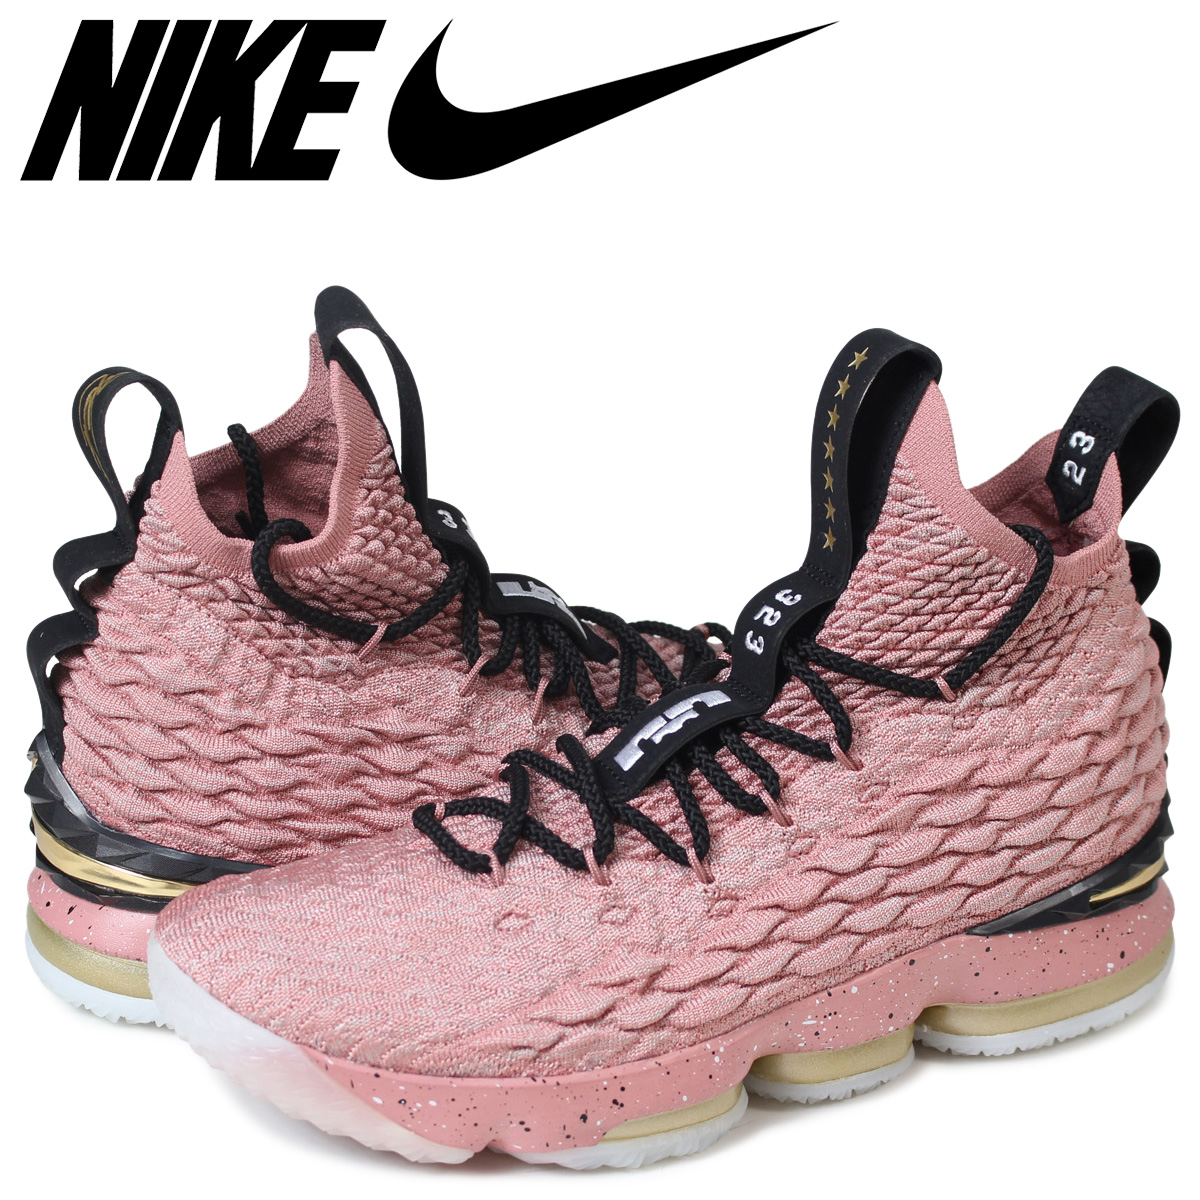 aa7b931062a2 ... basketball shoes cheap sale ede13 c5418  good nike lebron 15 ep nike  revlon 15 sneakers men aa3857 600 pink 185 5a14a b2033